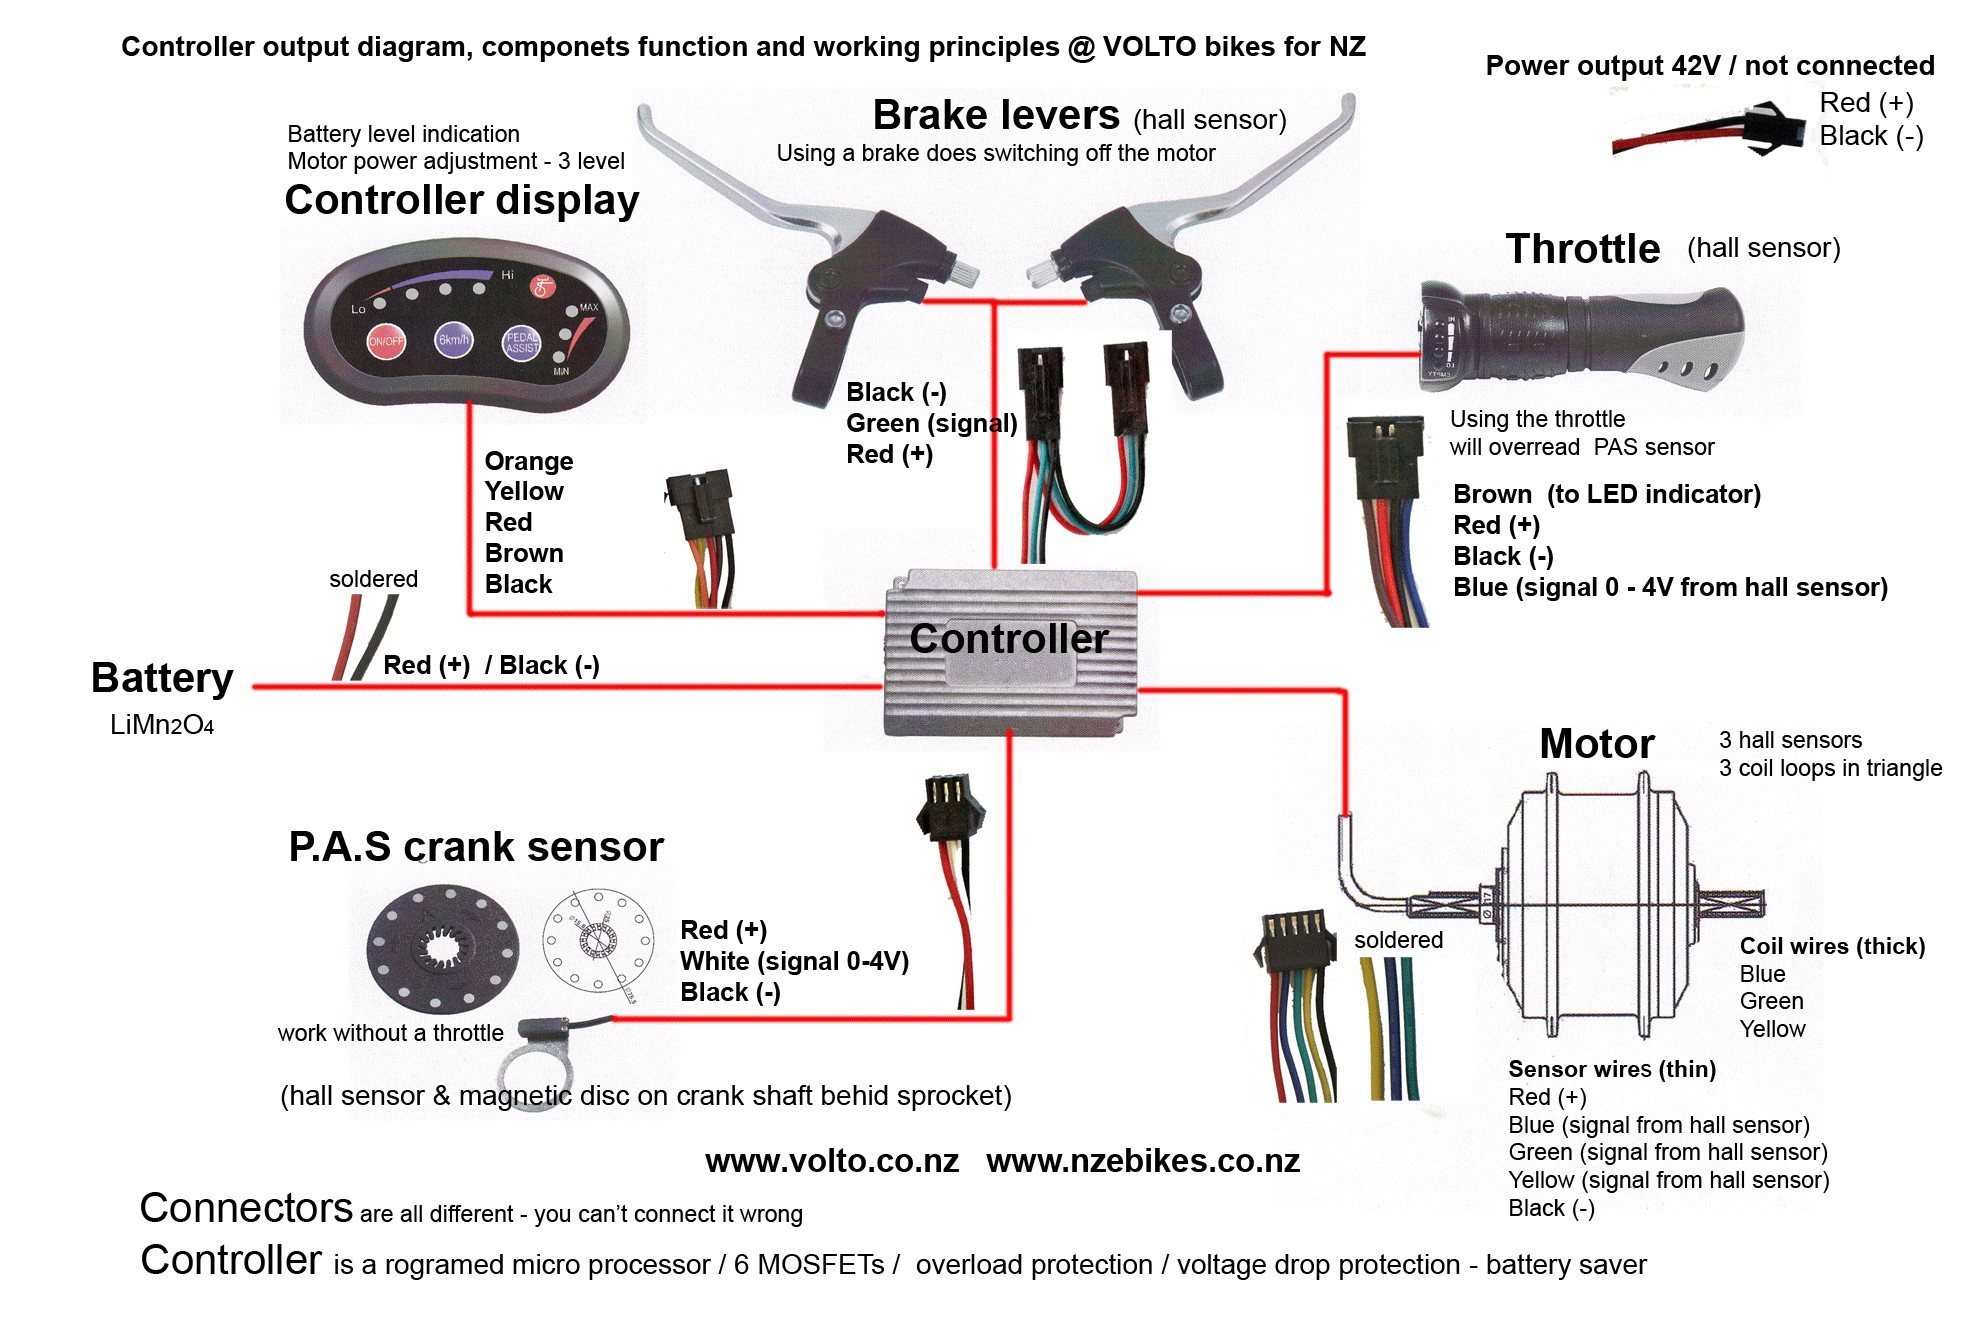 e bike controller wiring diagram - electrical wiring diagram nz fresh wiring  diagram electric bike rh